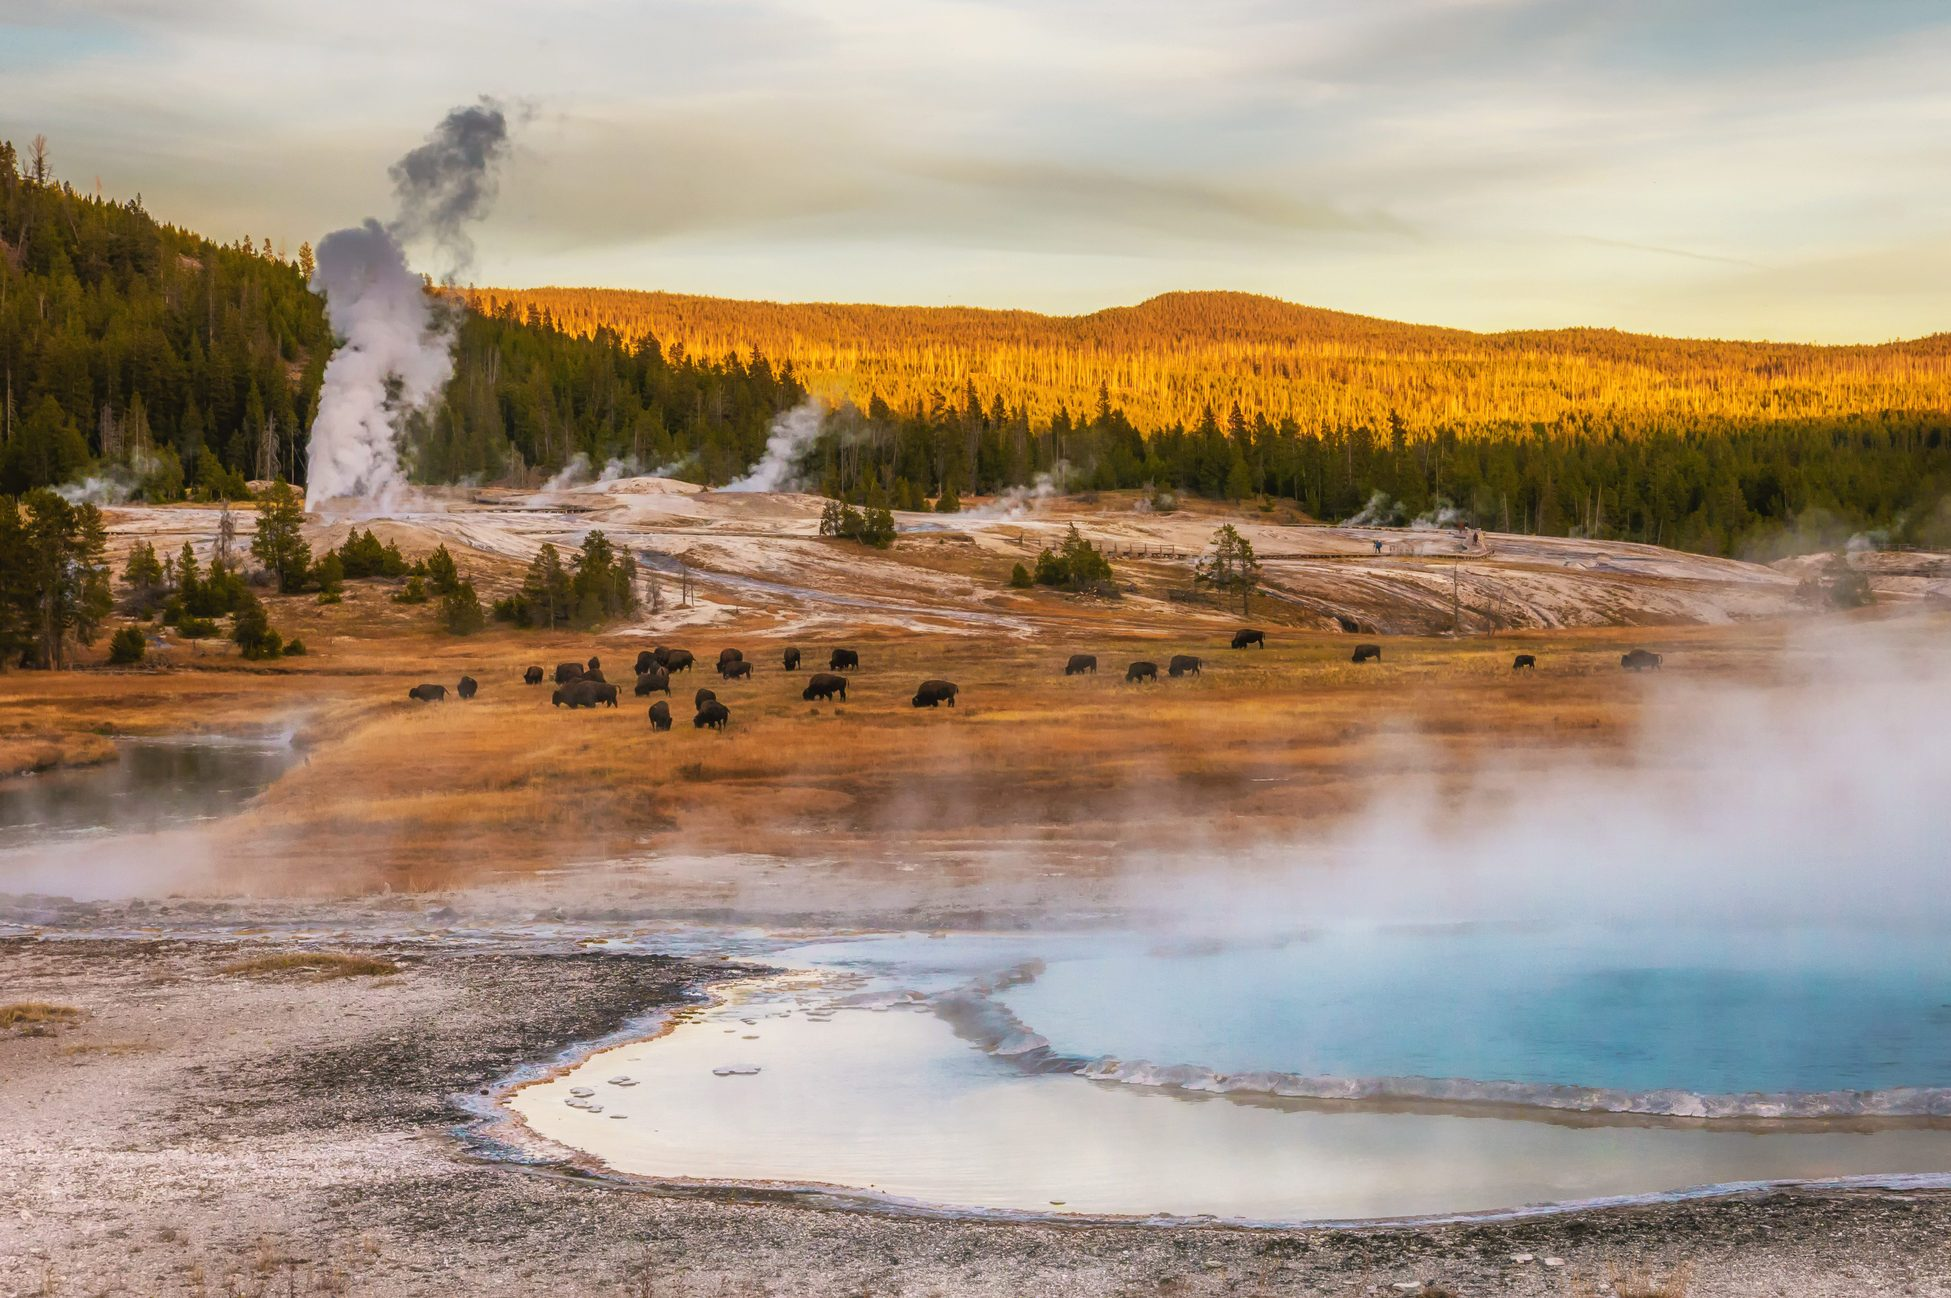 Steam rising from thermal hot springs and geysers. Bison grazing. At Yellowstone National Park, Wyoming, USA.